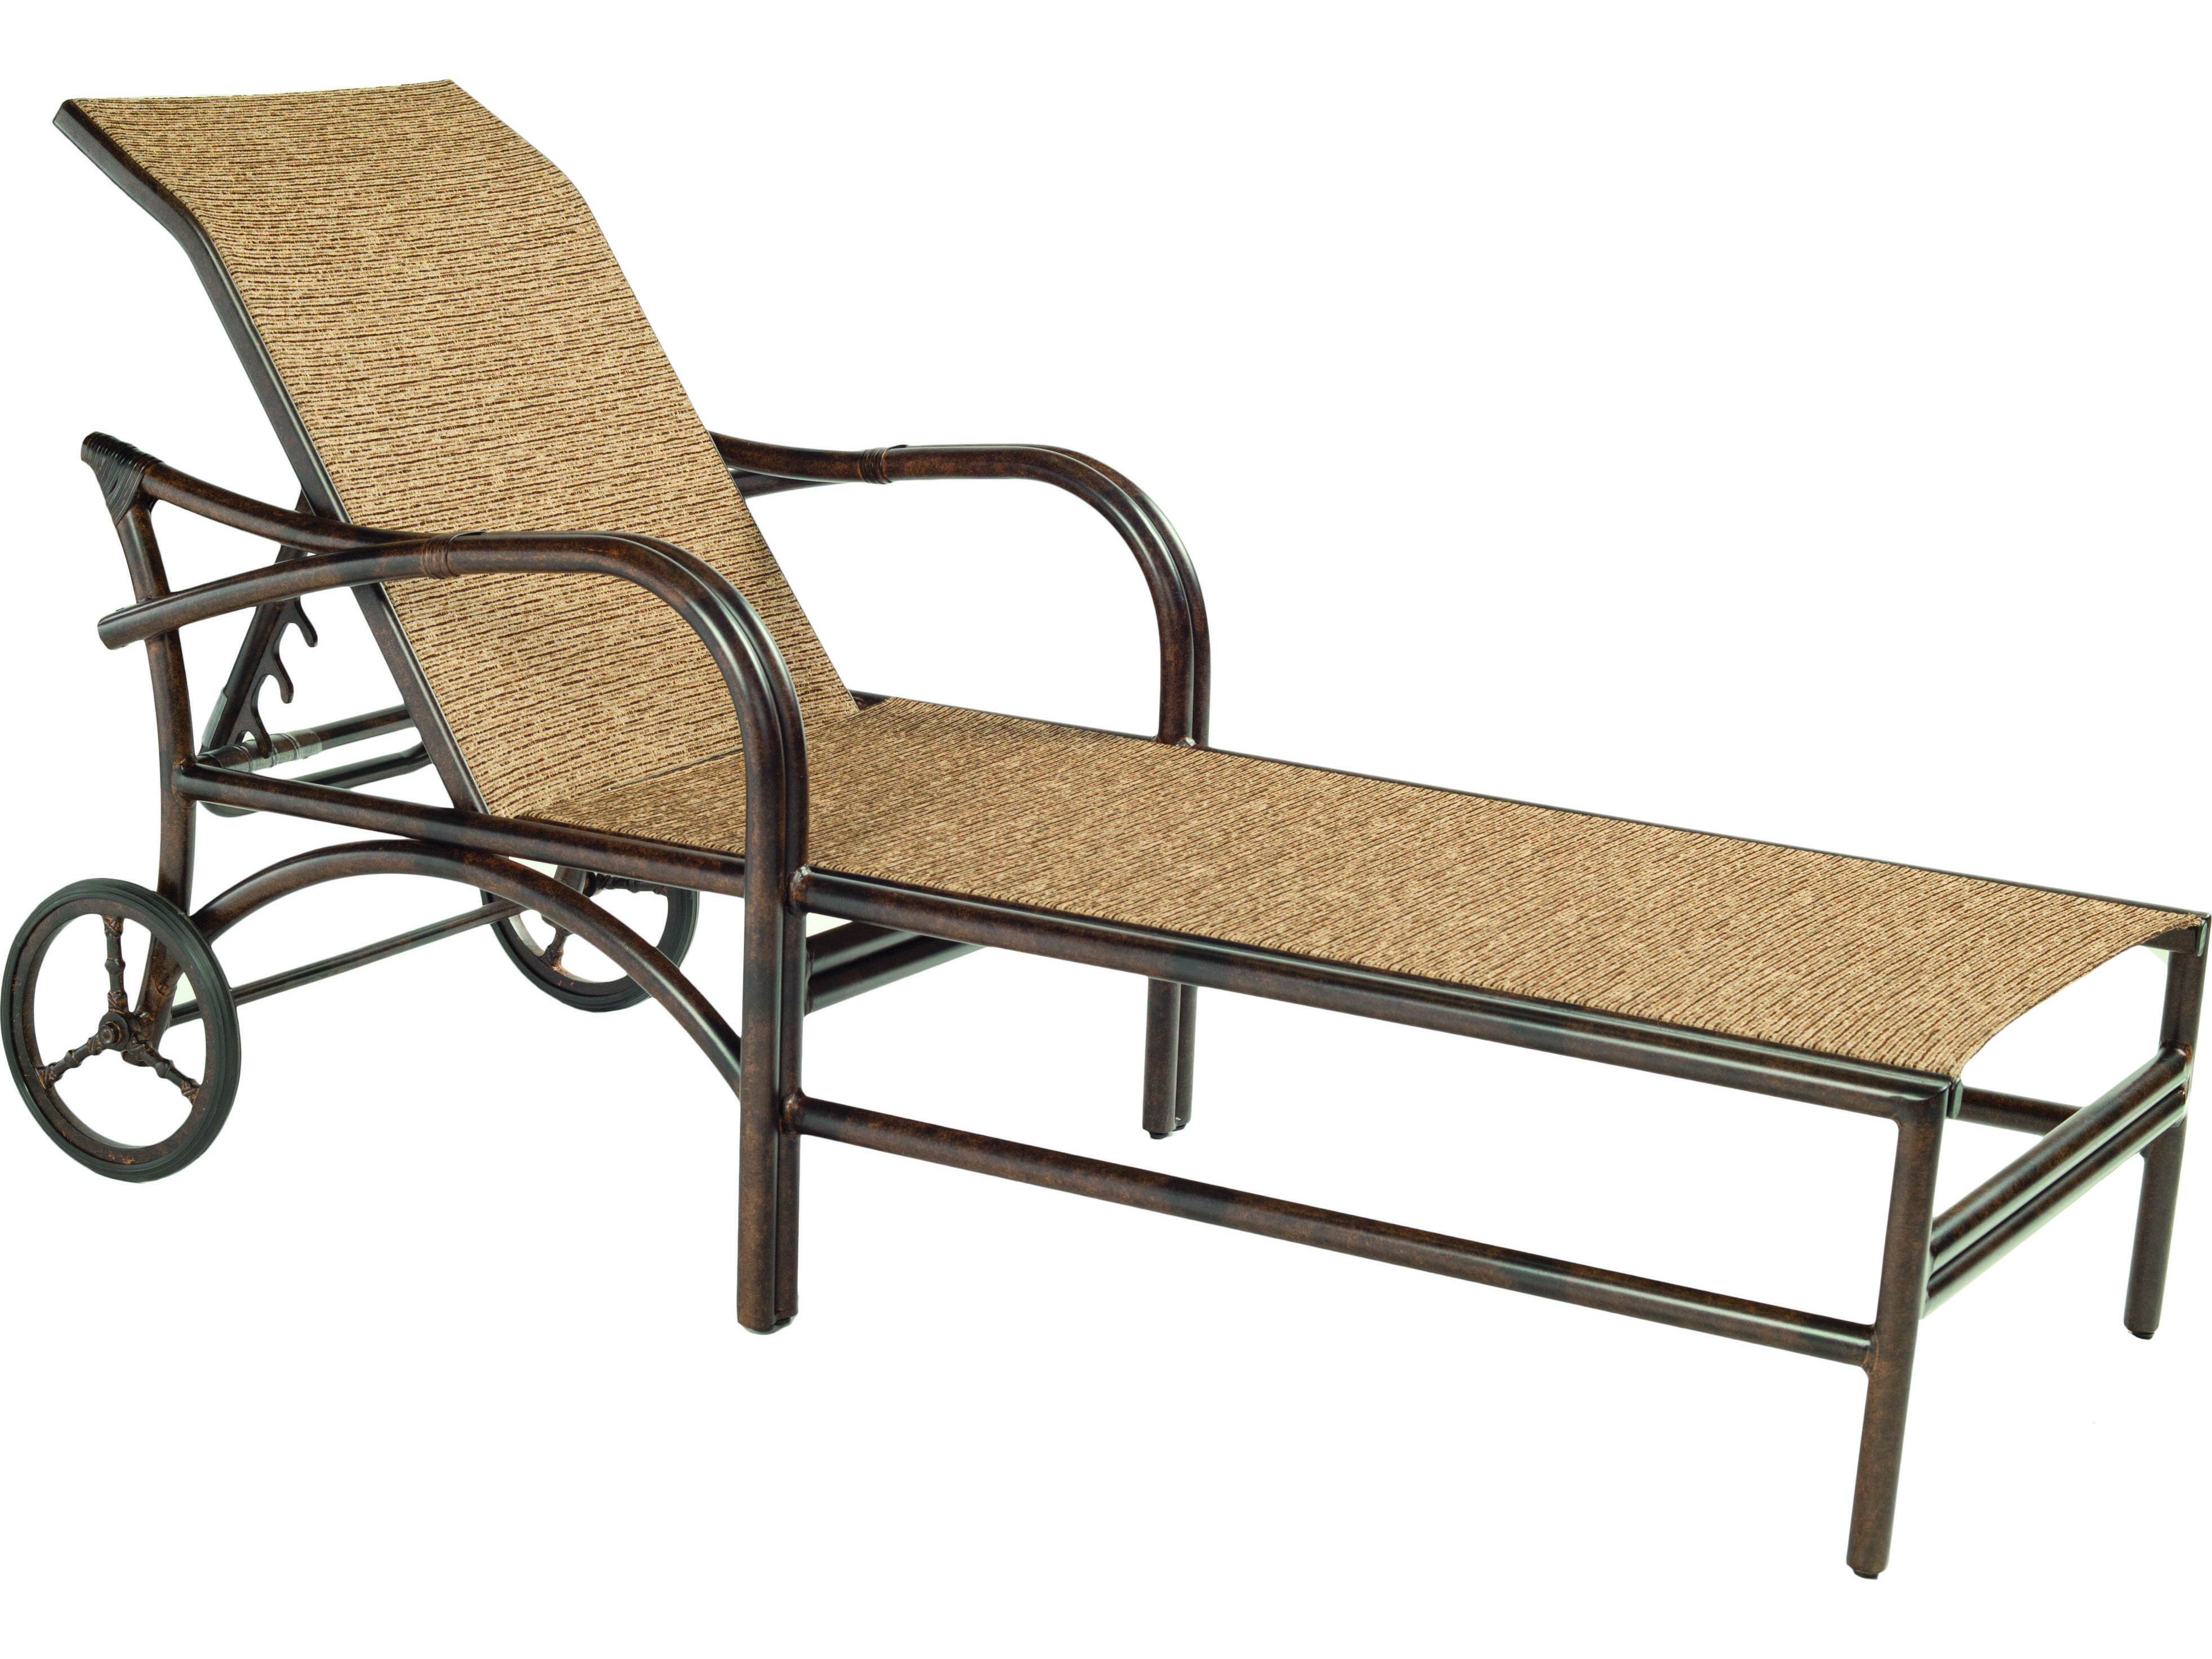 metal lounge chair with wheels office chairs ergonomic mesh castelle sundance sling cast aluminum adjustable chaise